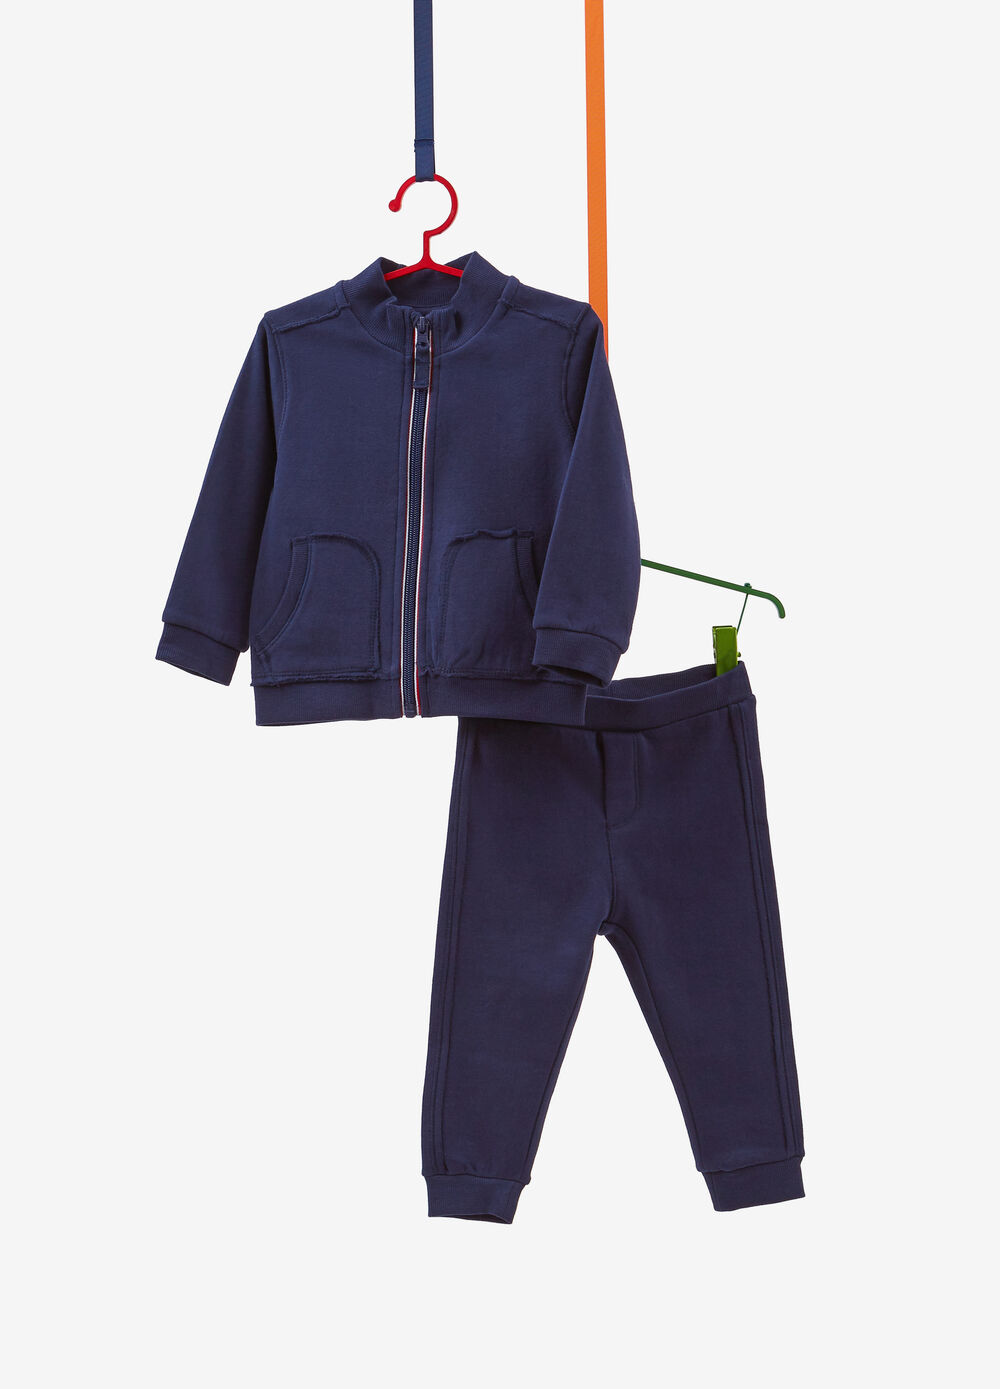 Tracksuit in 100% cotton with fringed stitching